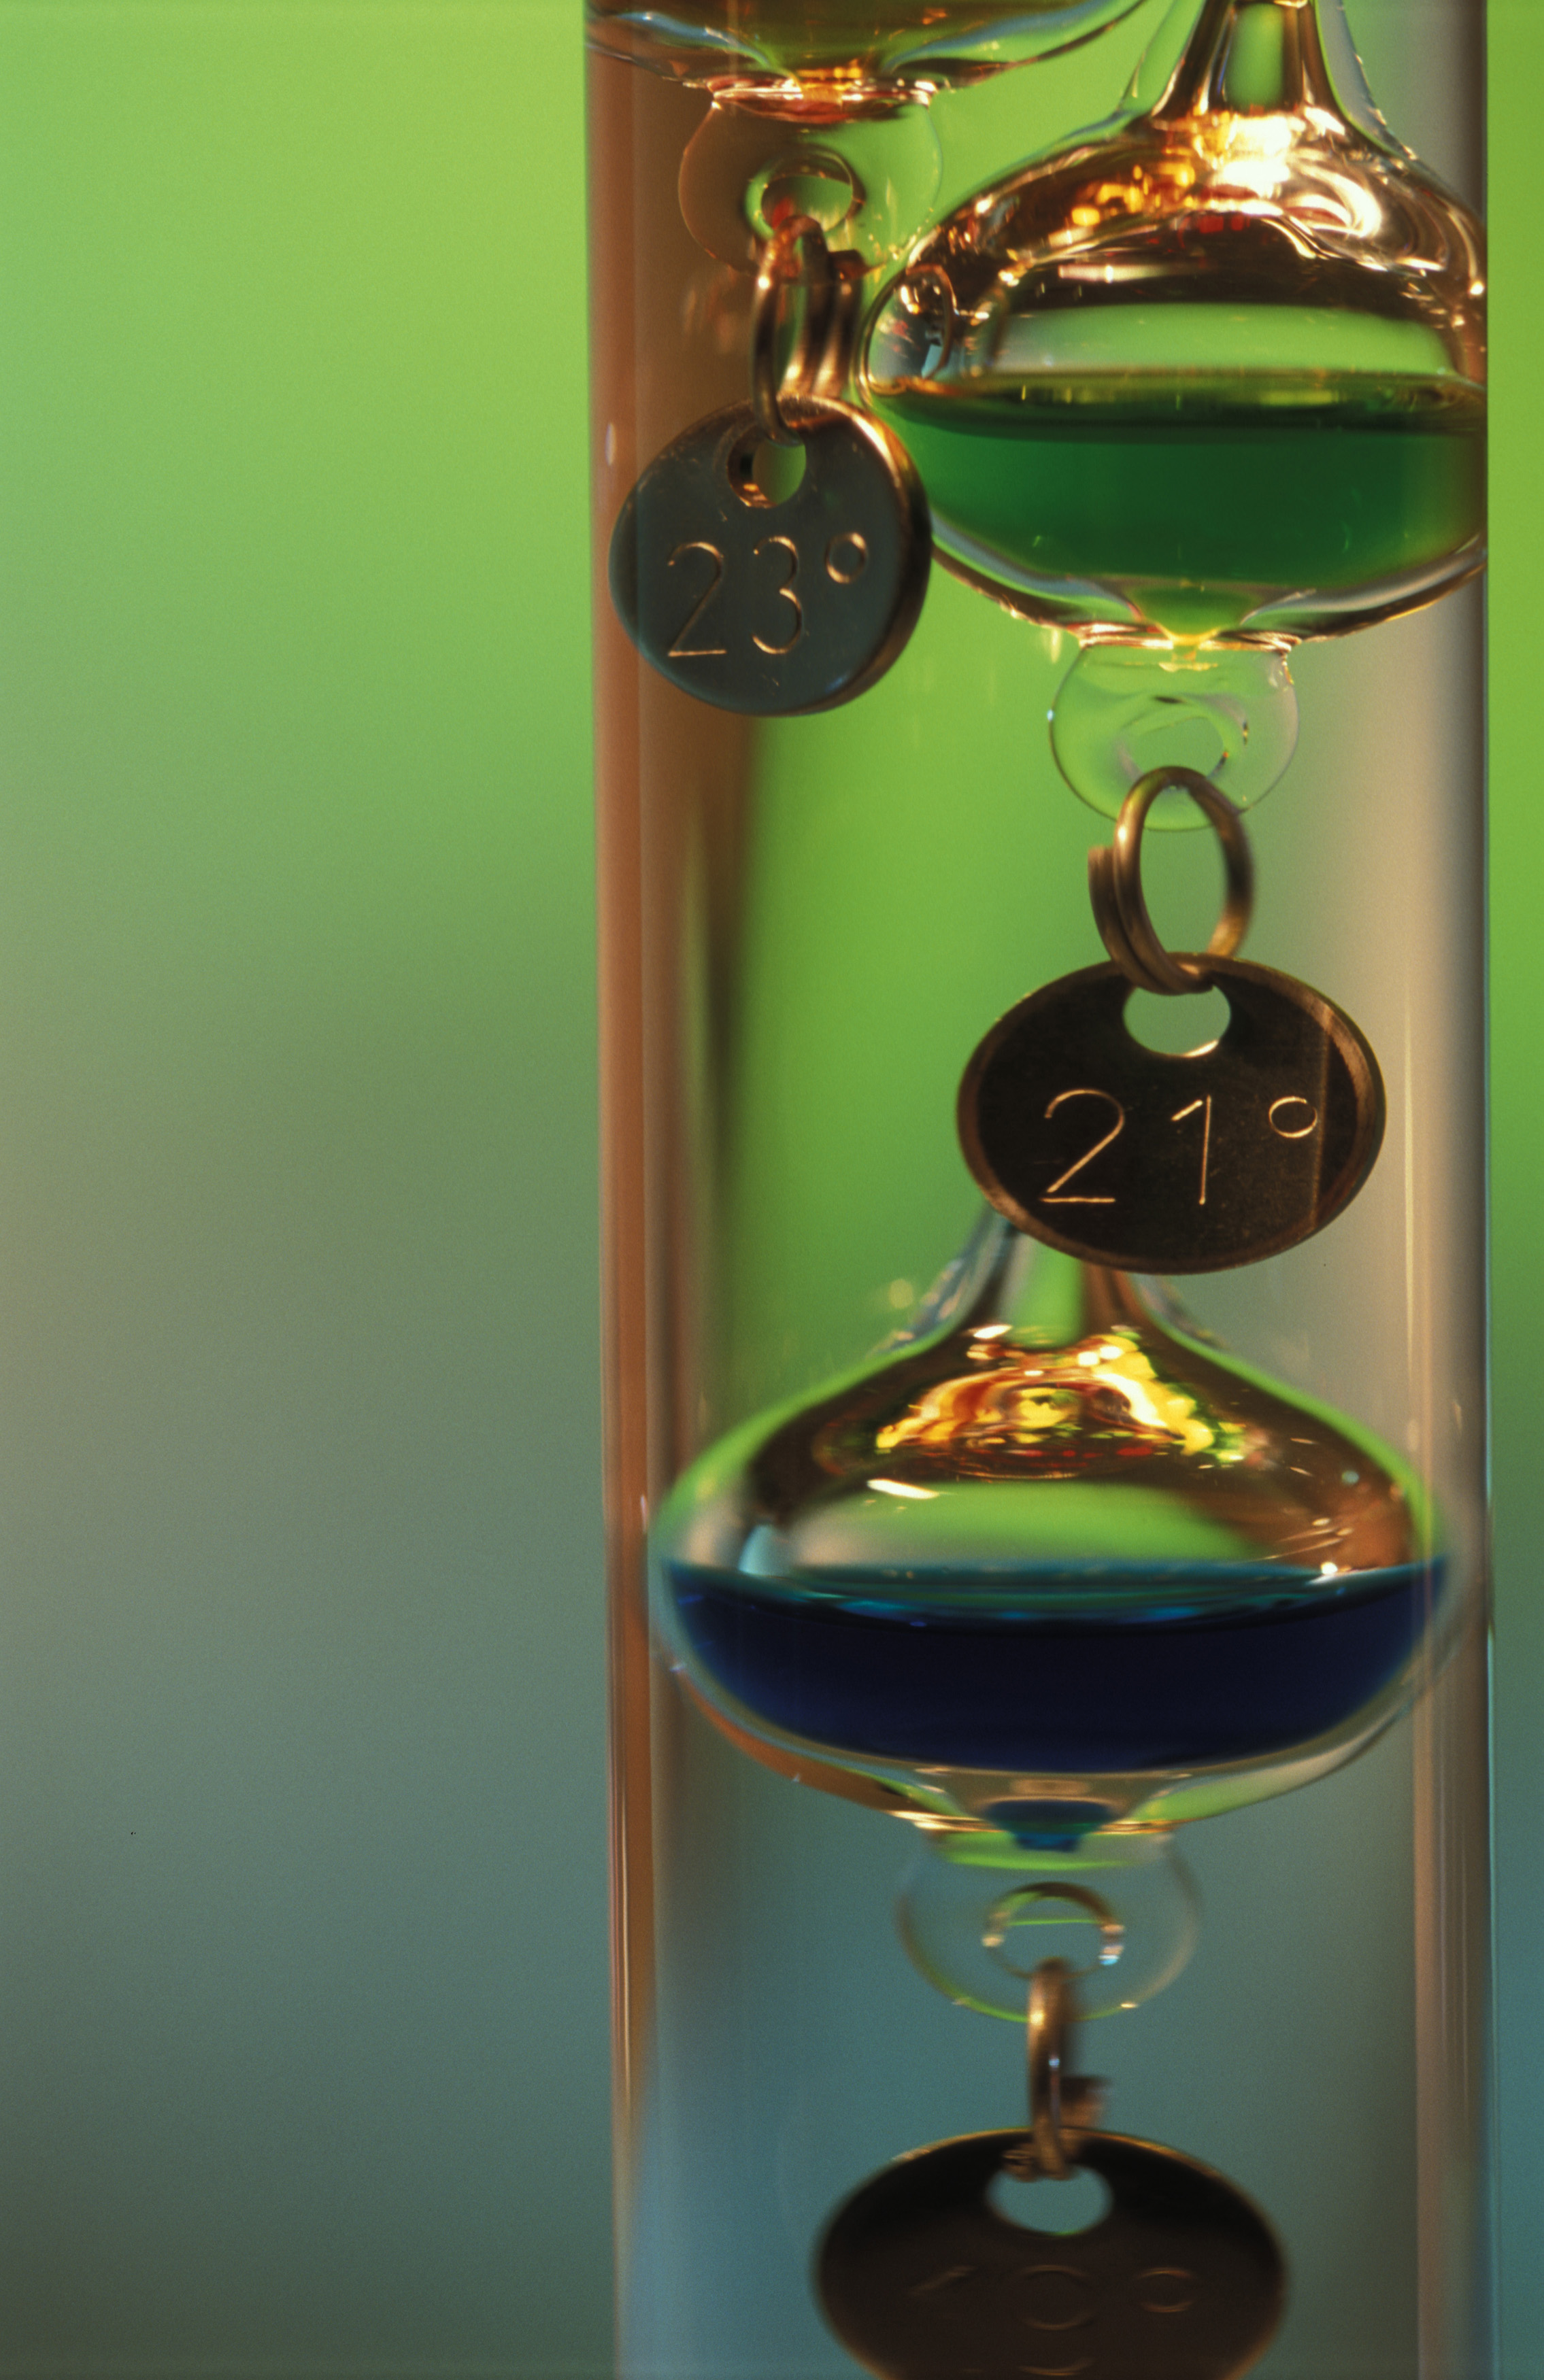 Floats in a Galileo thermometer, made of a sealed glass cylinder containing a clear liquid and several glass vessels of varying densities that rise and fall with temperature changes.